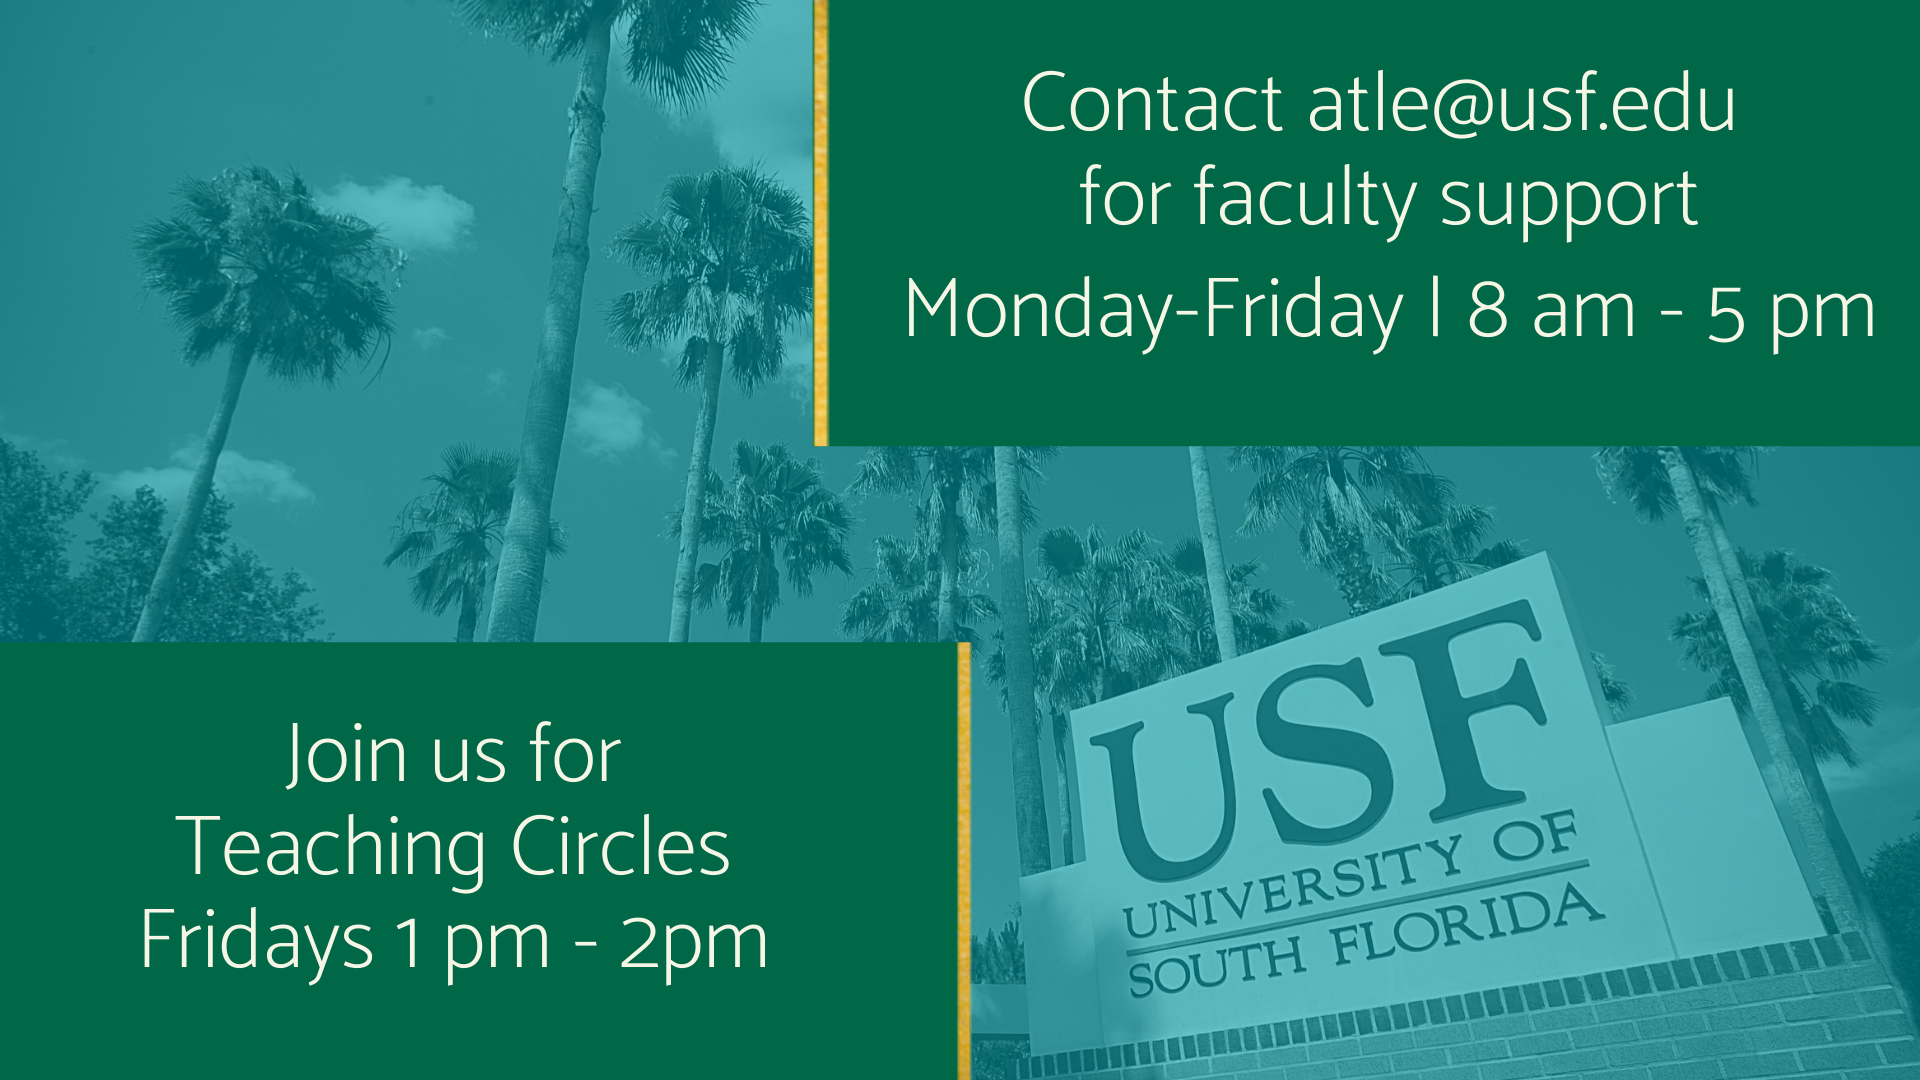 Faculty support from ATLE is available M-F, 8 am to 5 pm. Email atle@usf.edu